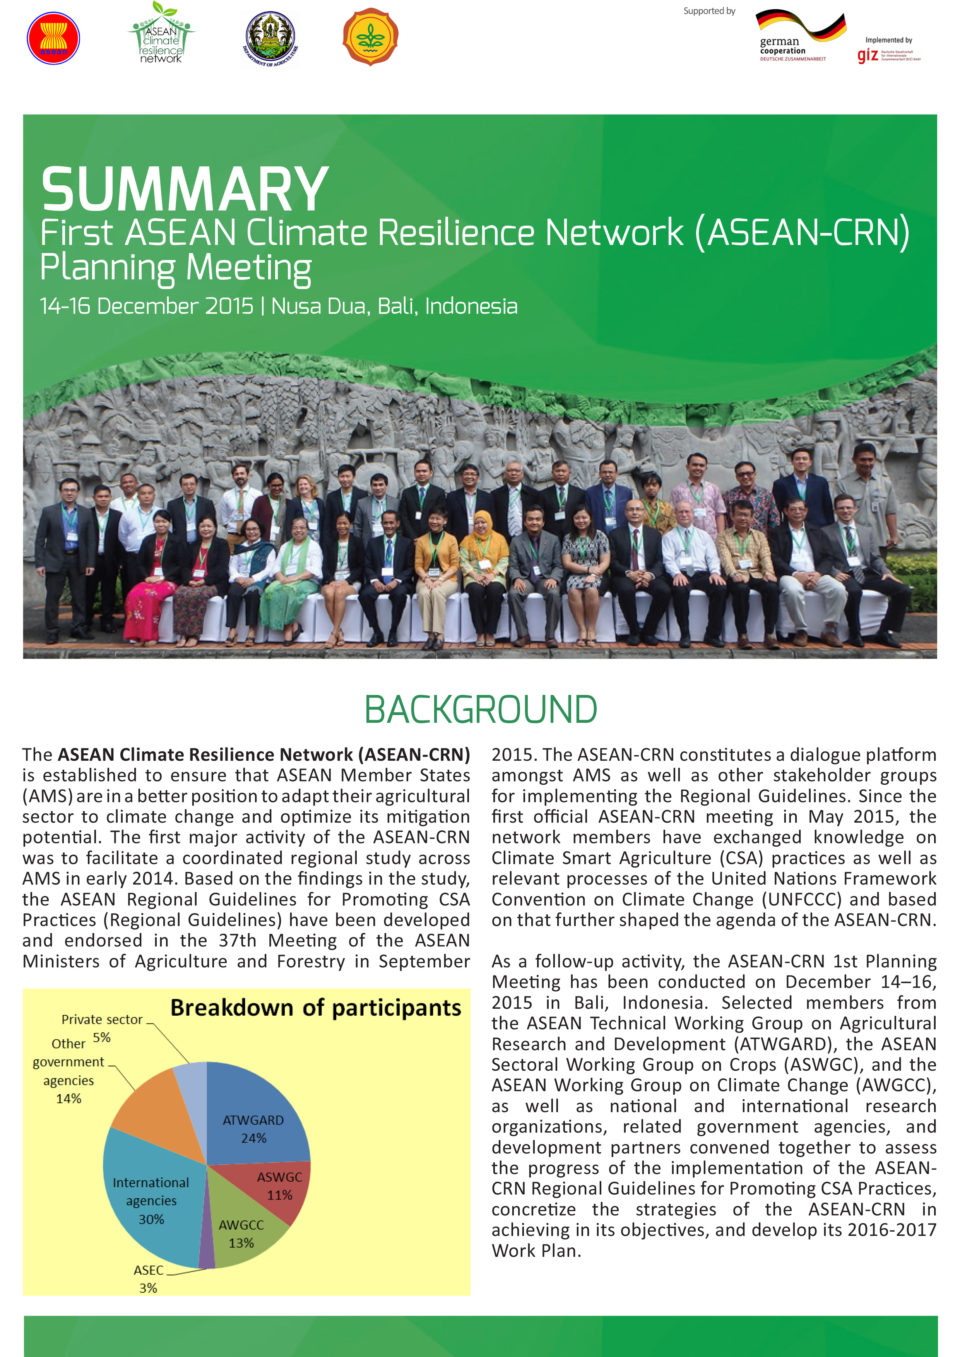 Summary_1st-ACRN-Planning-Meeting